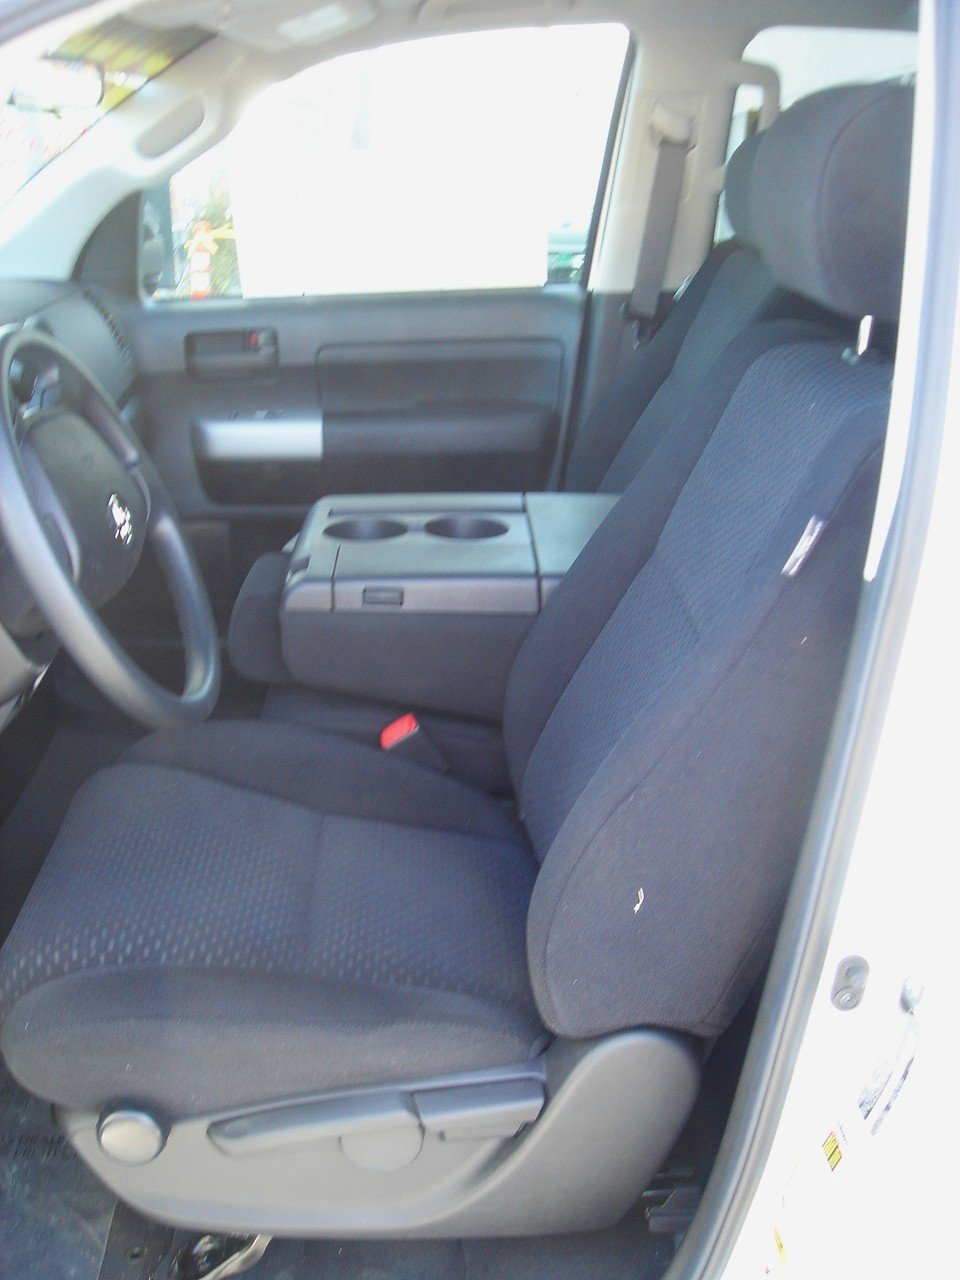 Durafit Seat Covers, Made to fit 2007-2013 Tundra 40/20/40 Seat Covers in Black Automotive Twill